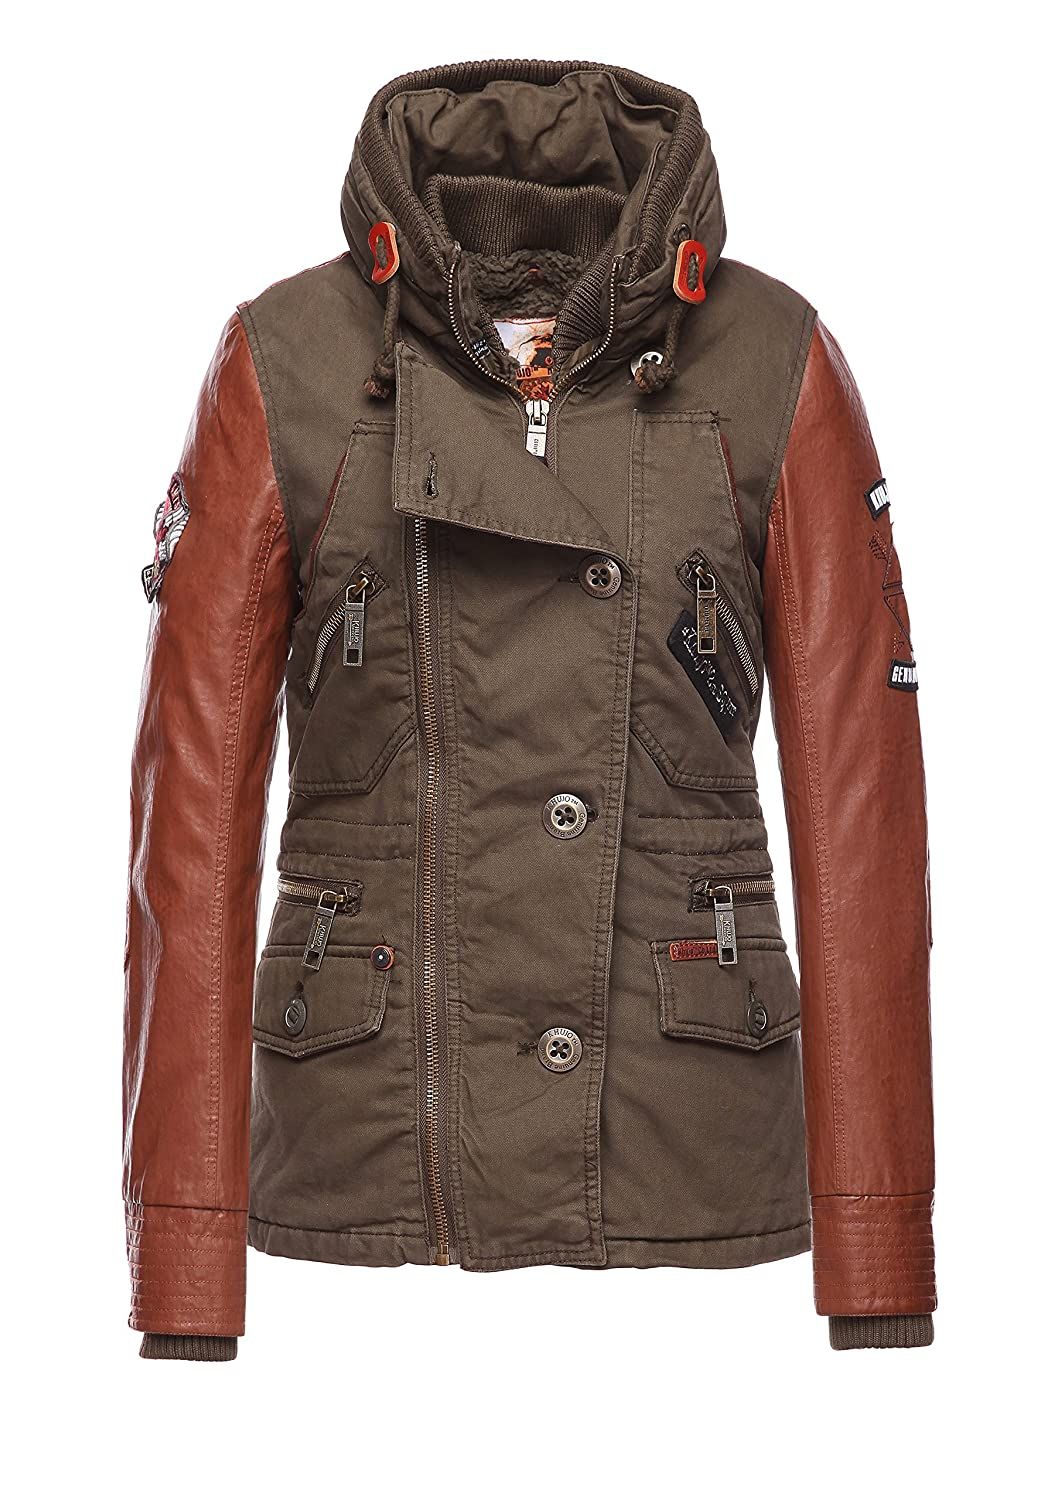 Khujo Damen Winterjacke India Fake Leather Mix With IJ olive bestellen